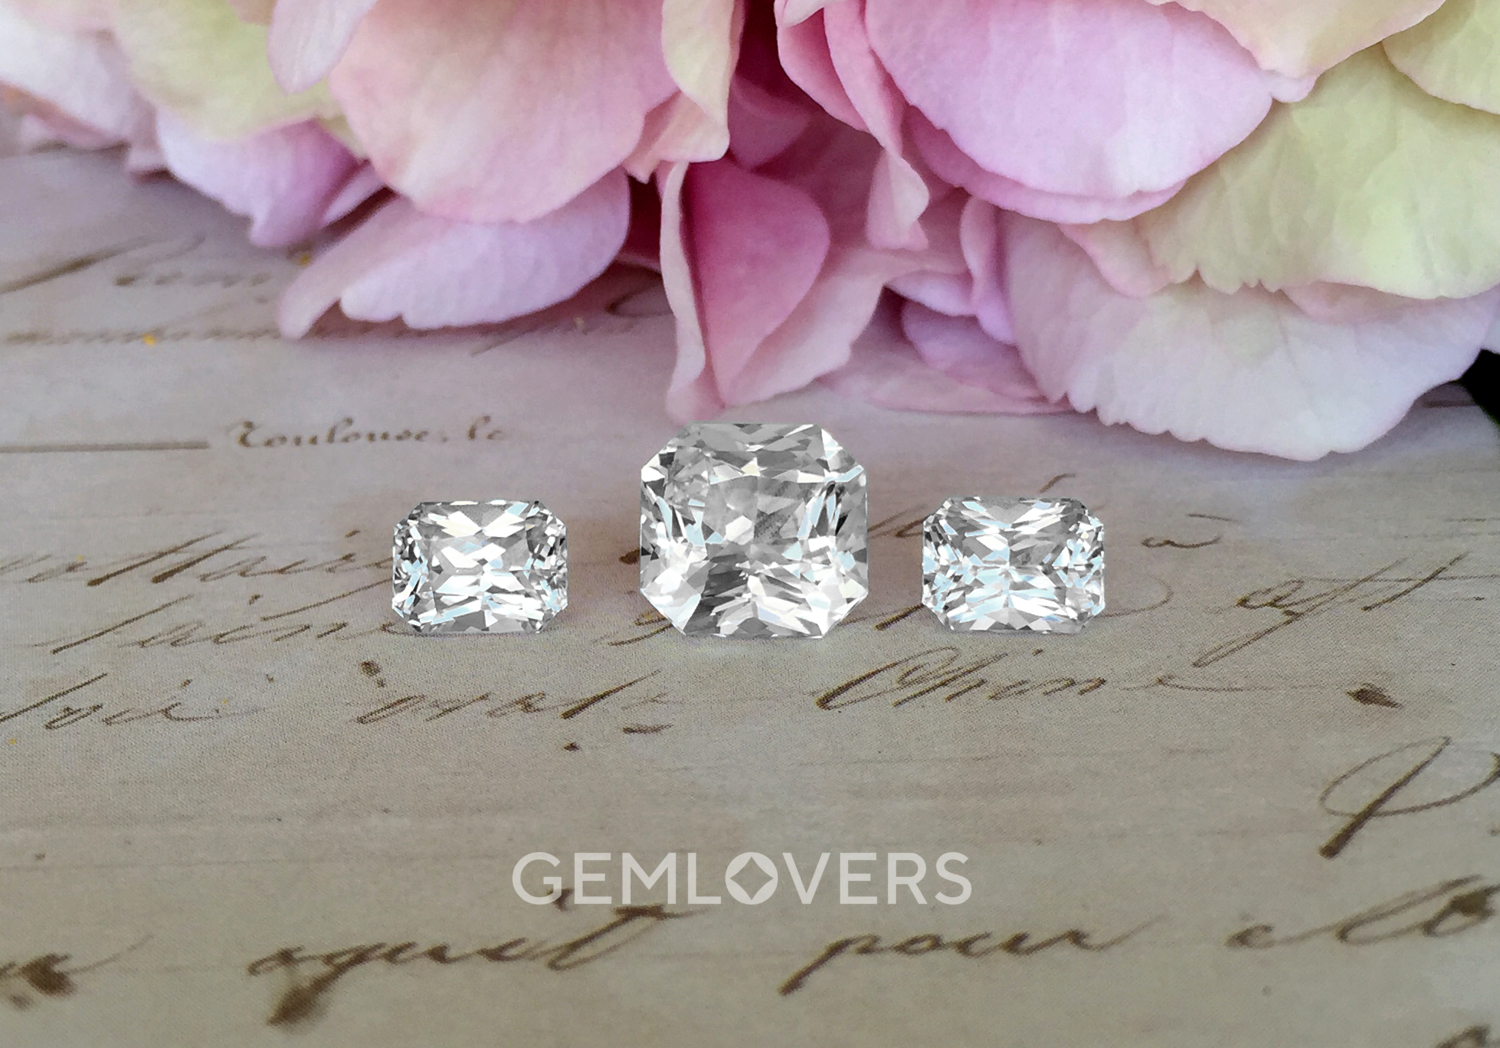 Set of natural white radiant cut sapphires